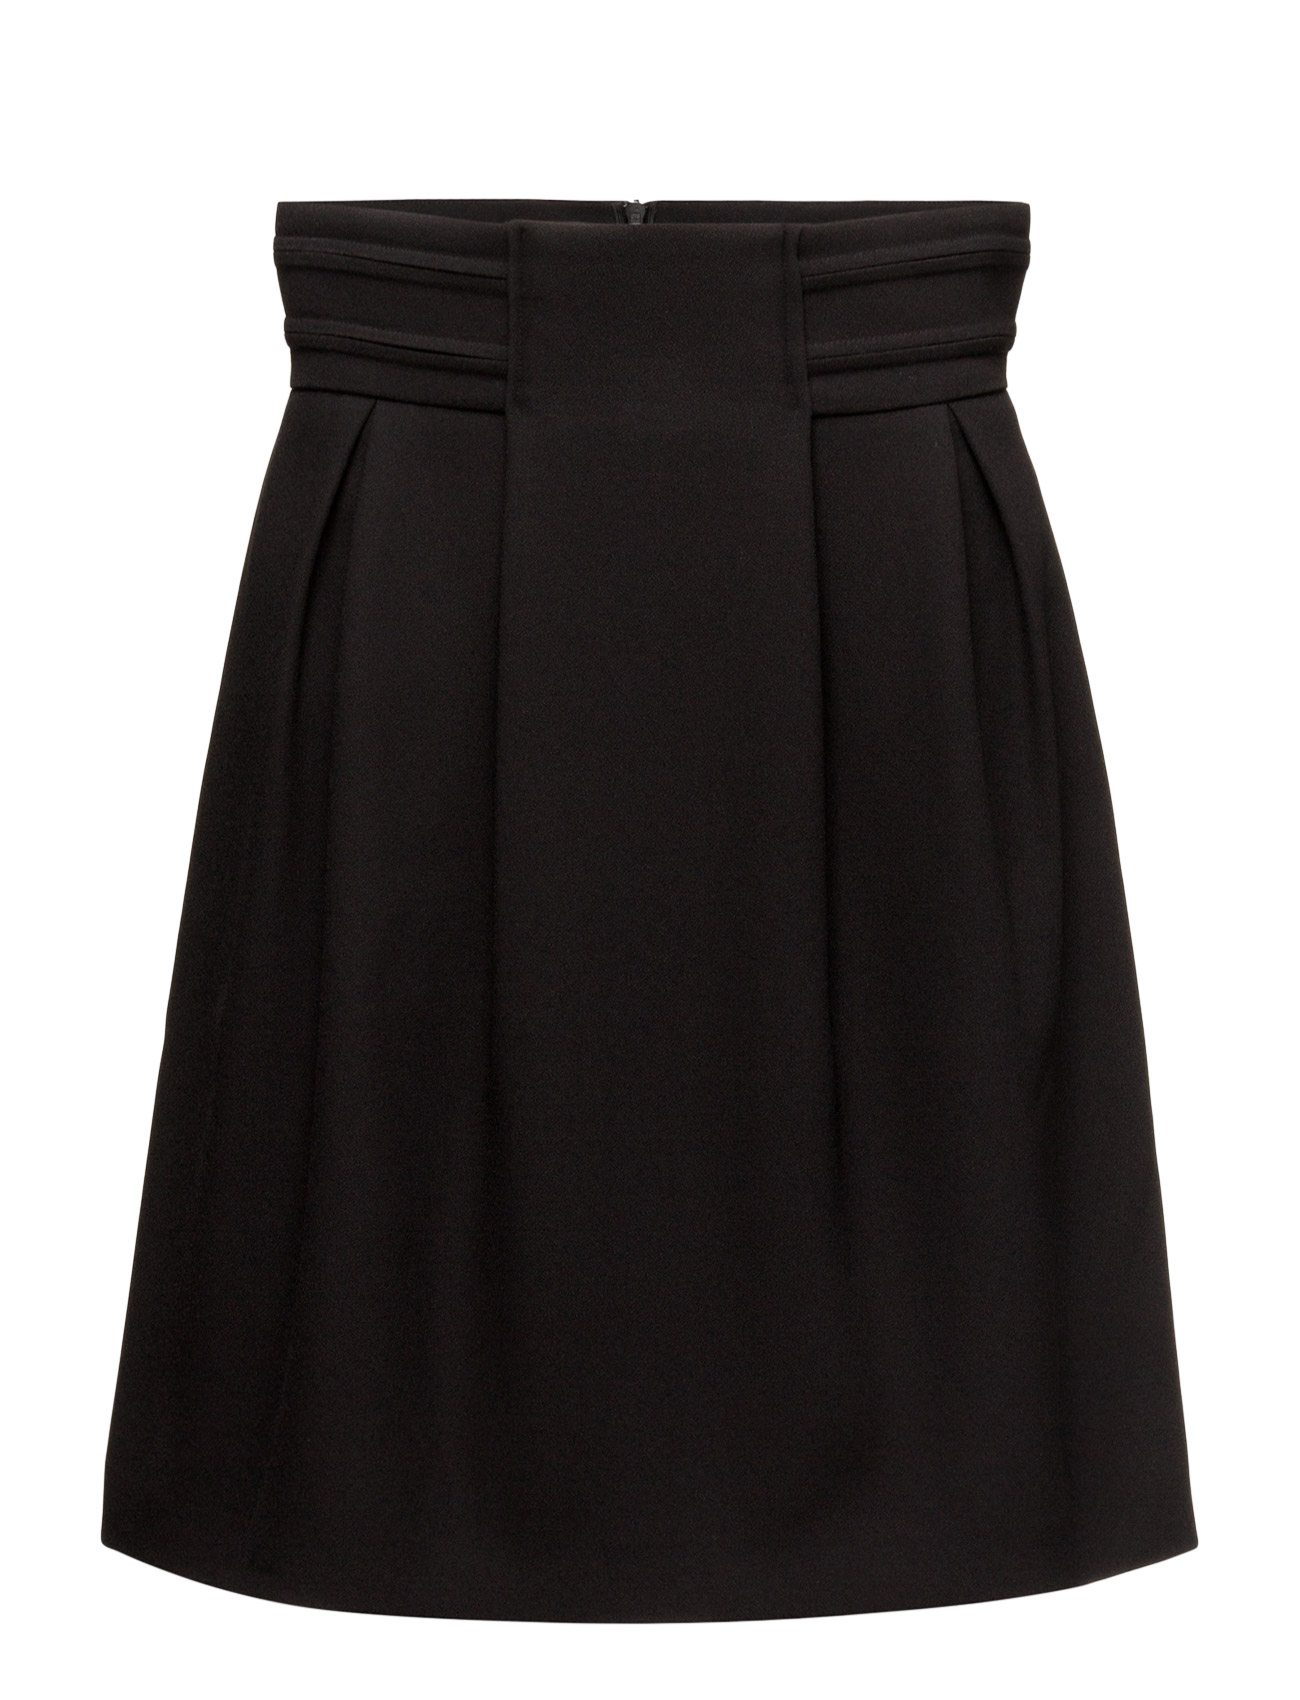 Esprit Collection Skirts Light Woven 186167144